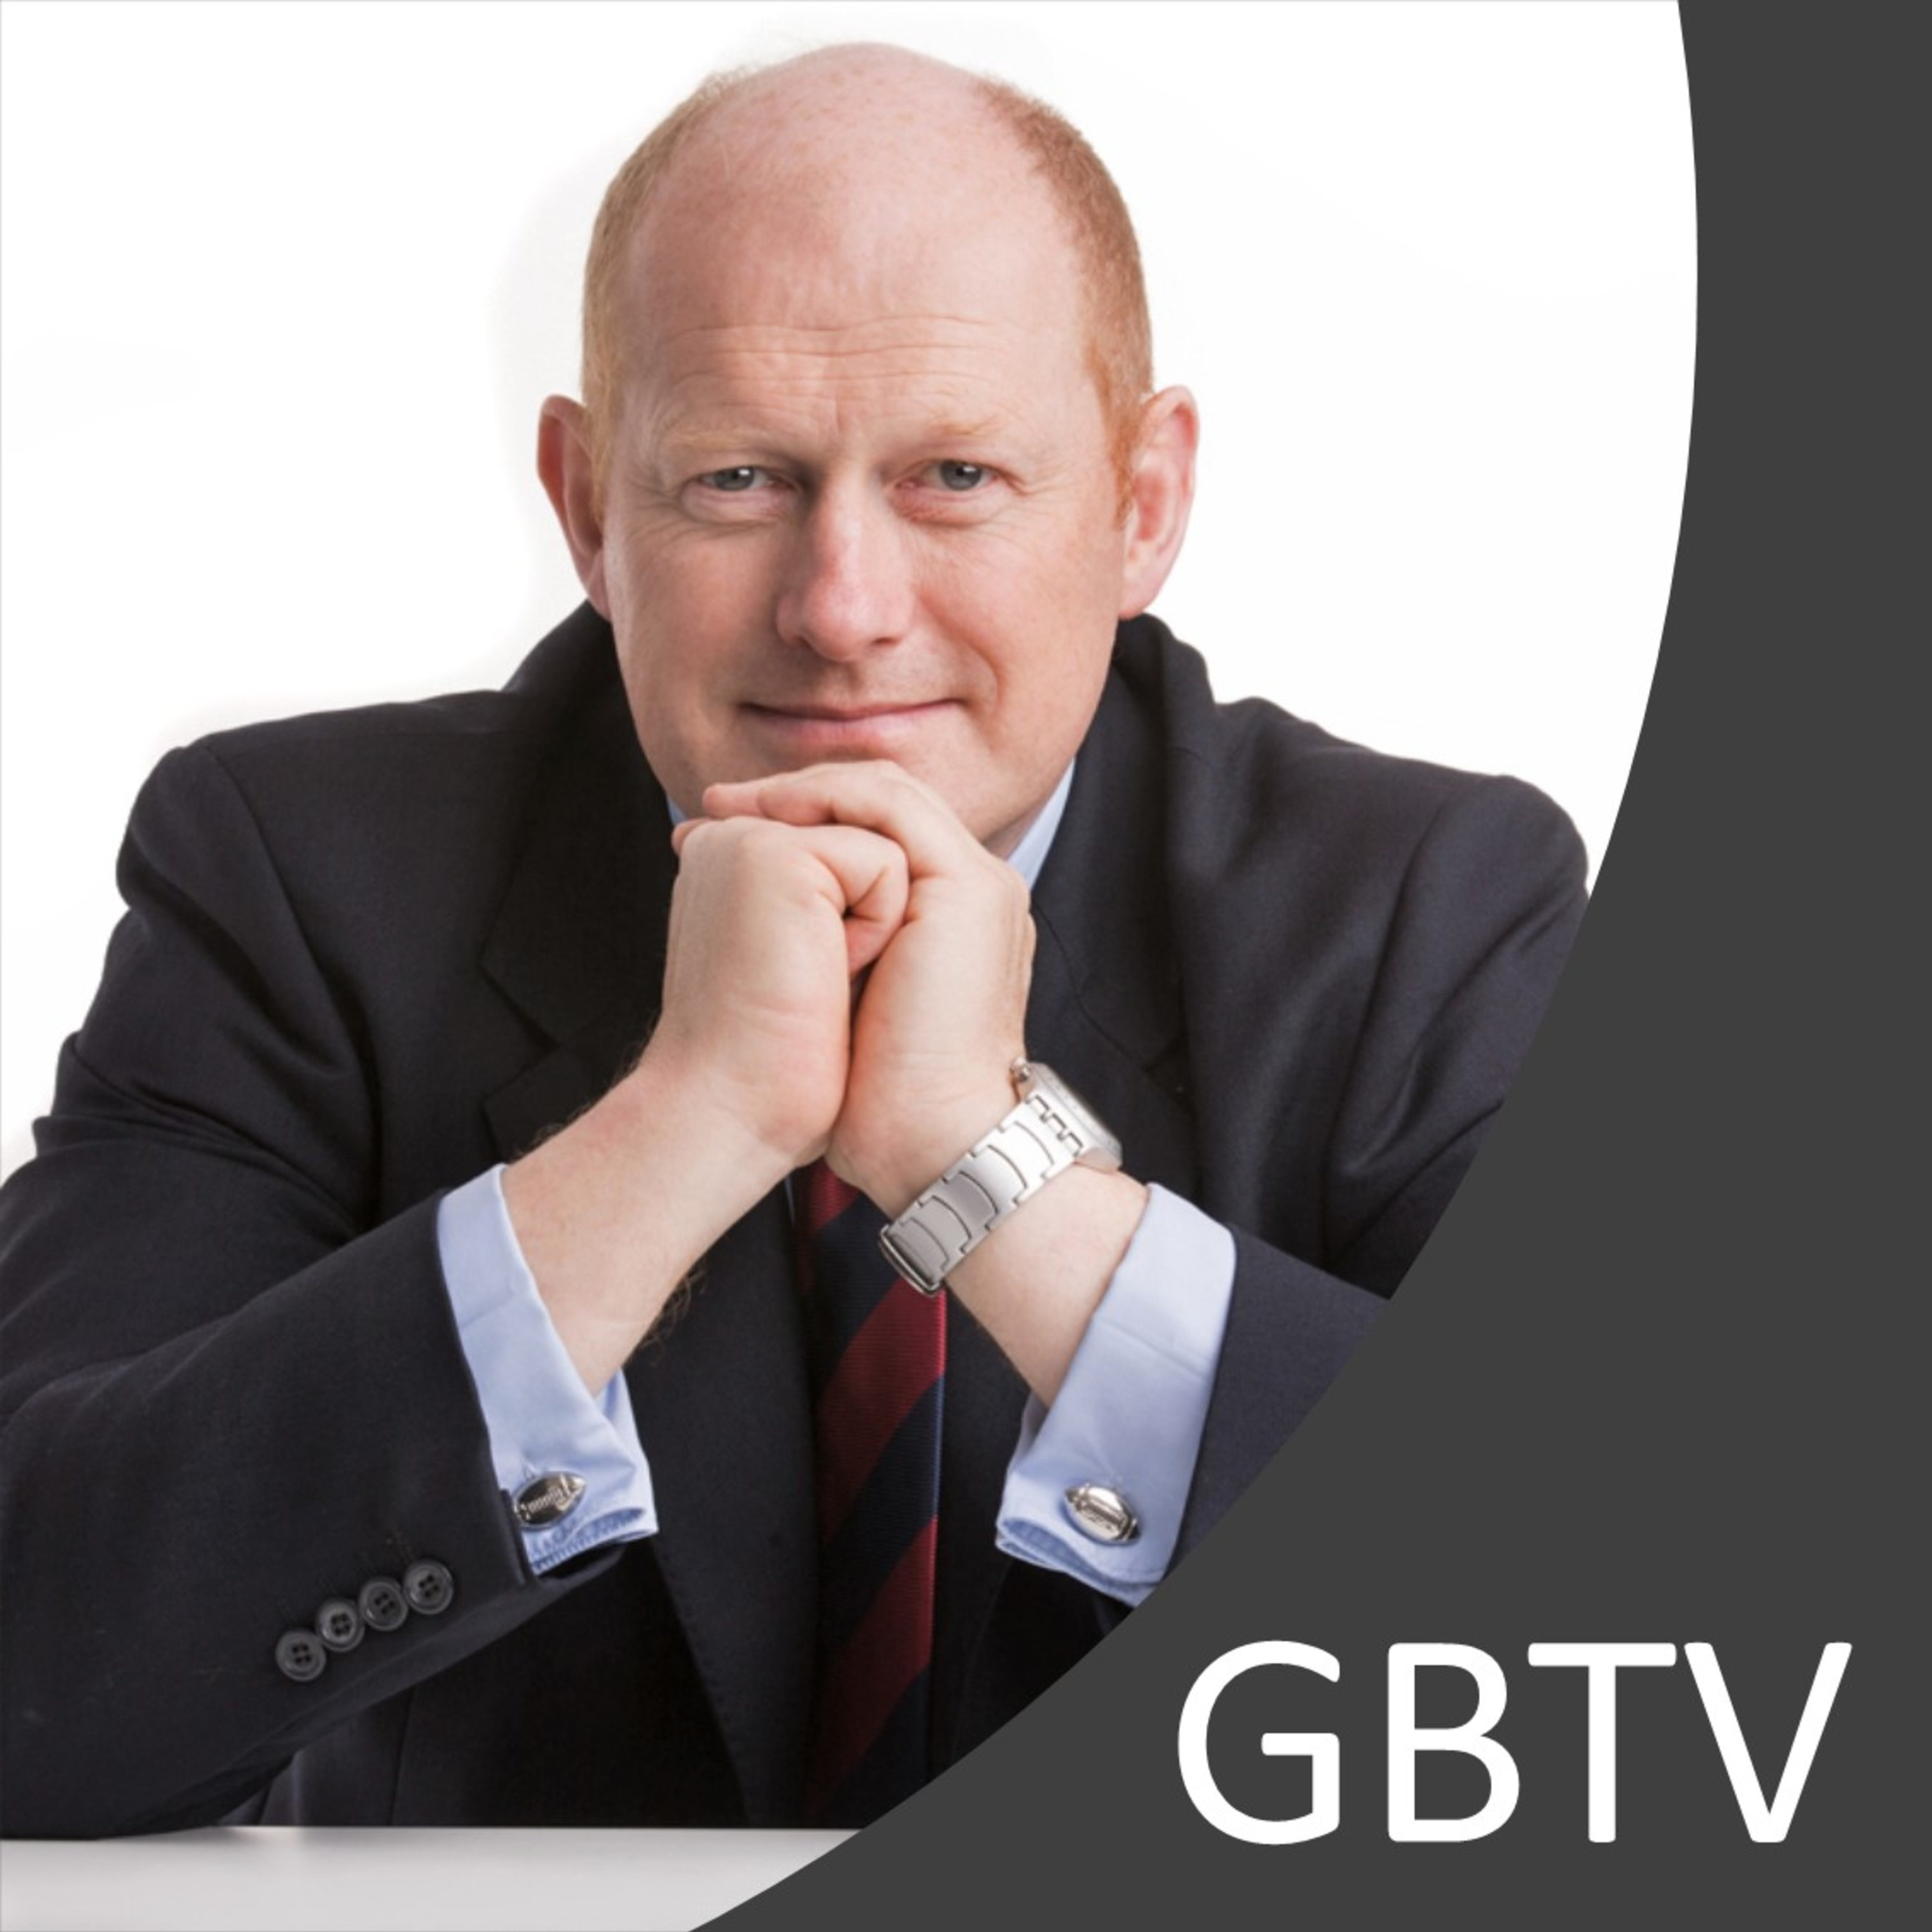 GBTV Podcast 9 - Why would you buy a business?